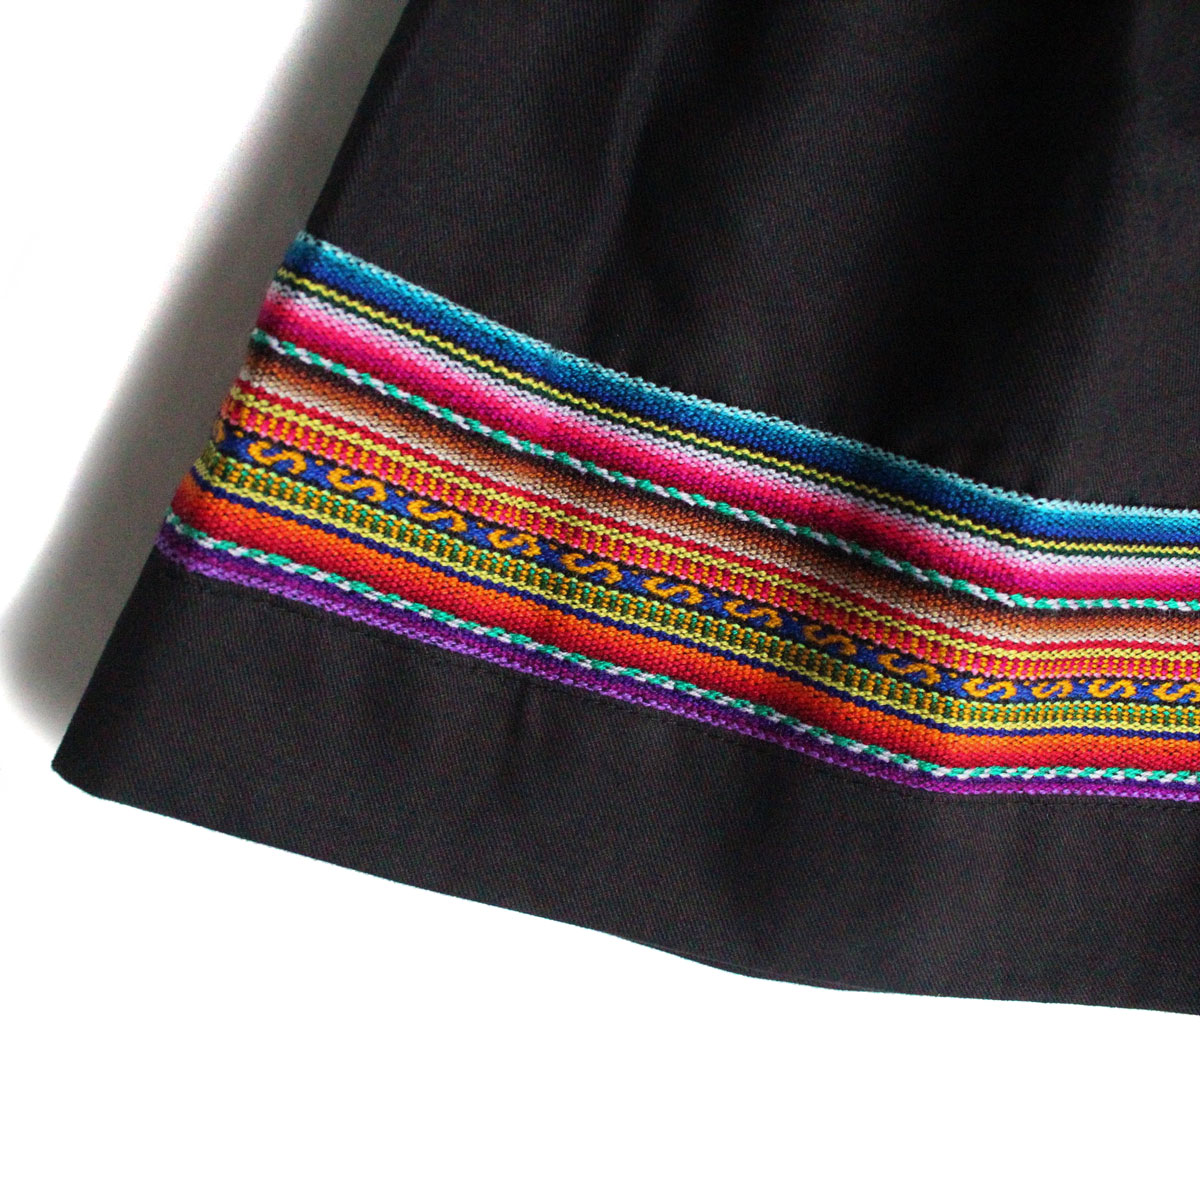 Inka-Products-Mini-Jupe Fille CHOLITA-Noir Motif Ethnique Kurmi-2